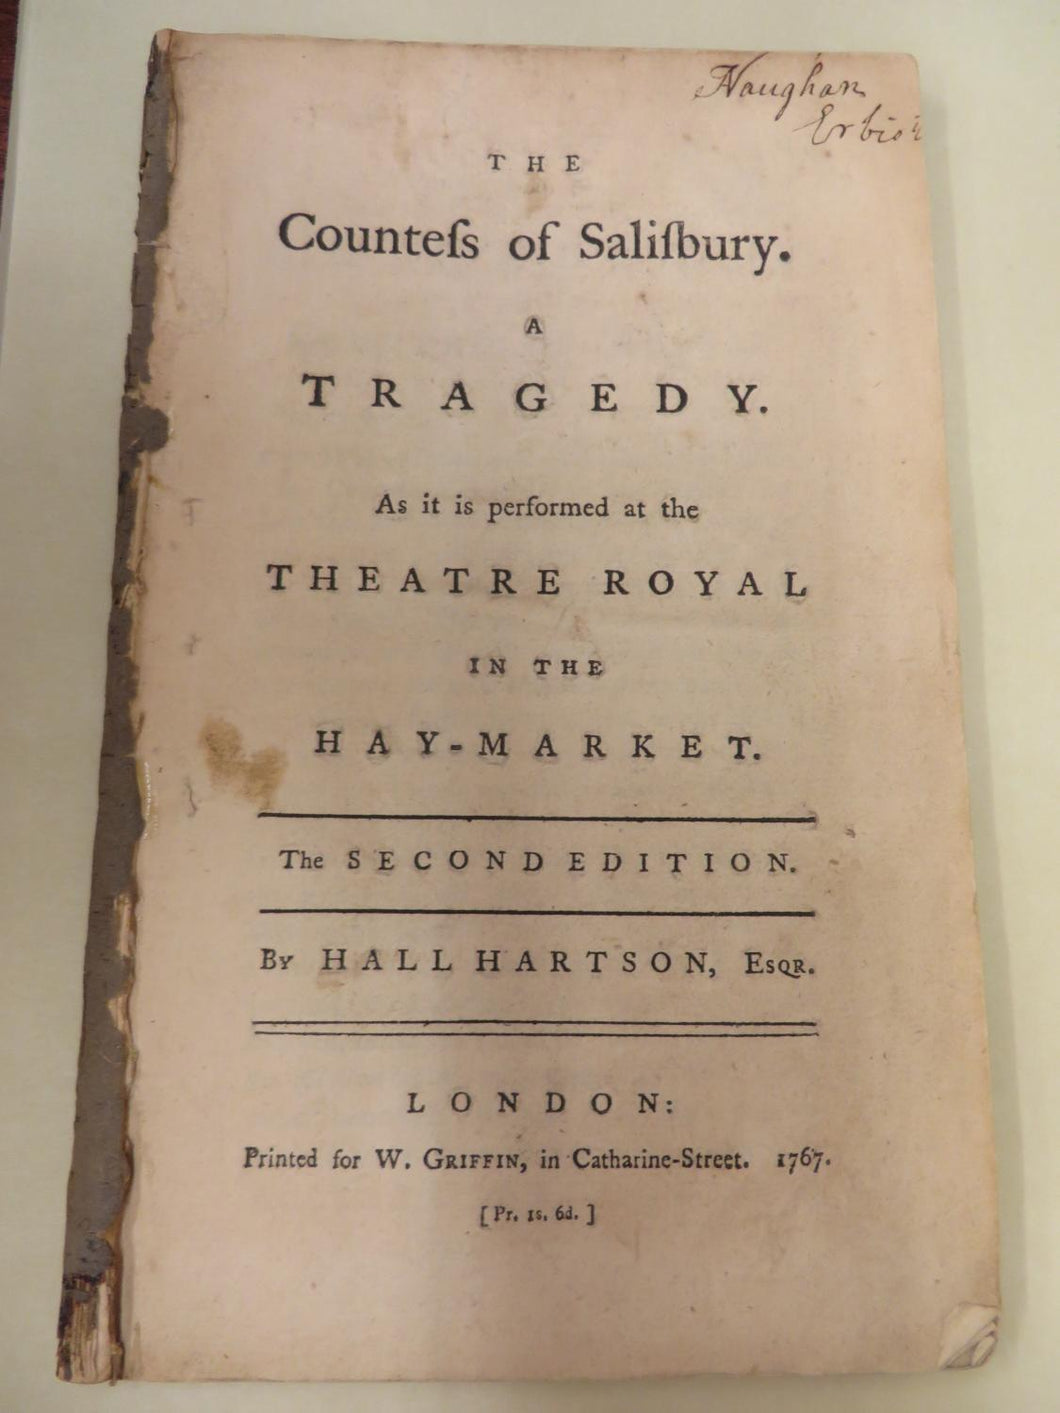 The Countess of Salisbury. A Tragedy. As it is performed at the Theatre Royal in the Hay-Market.